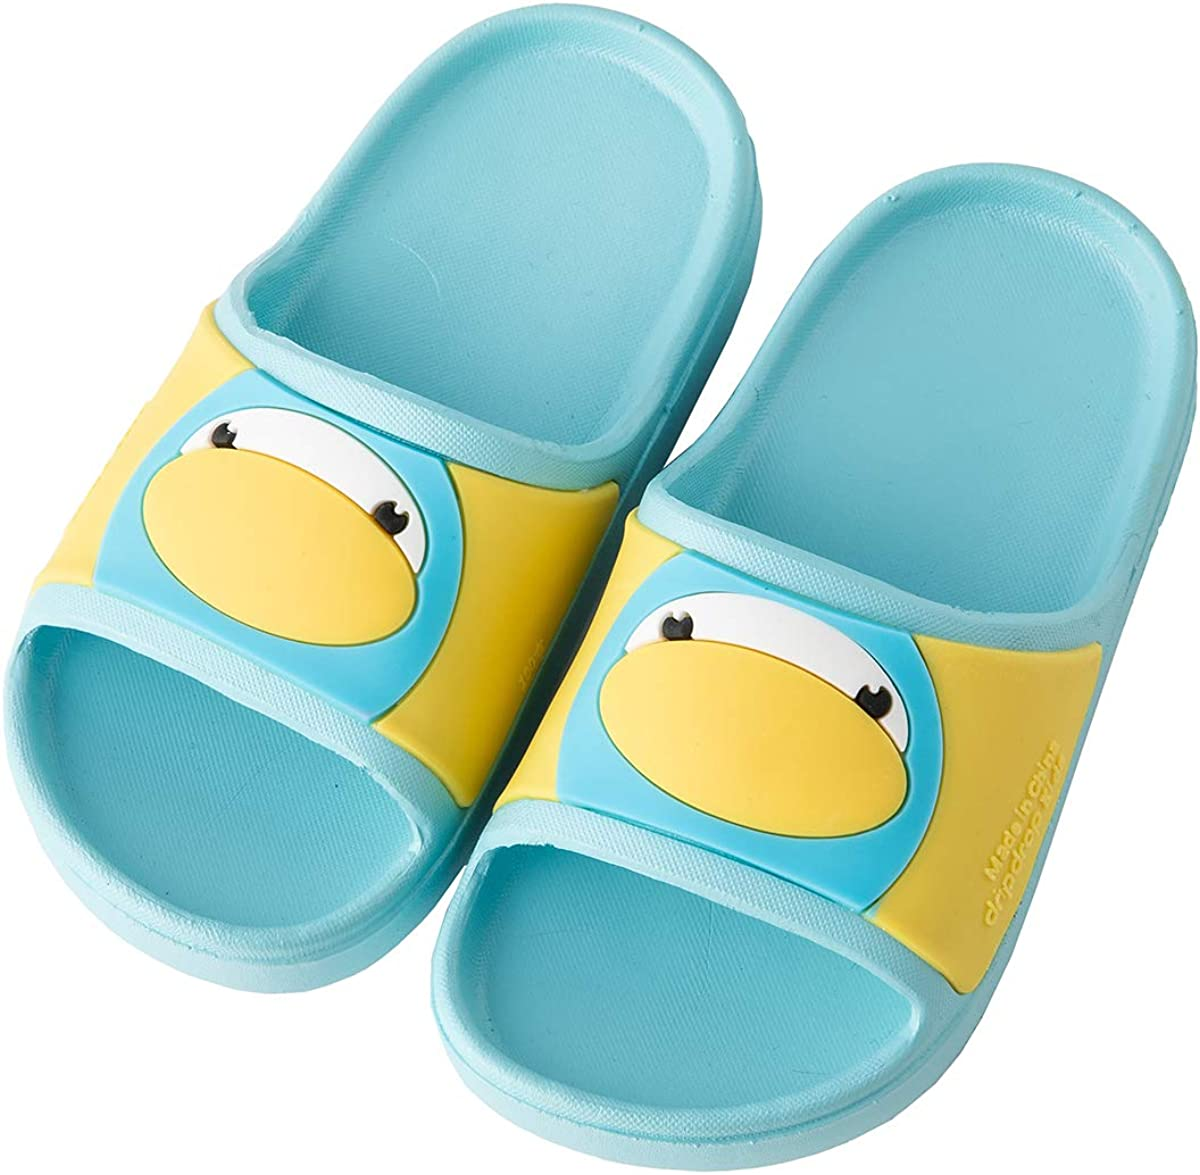 Today Ill Do Absolutely Nothing Slide Sandals Indoor /& Outdoor Slippers Shoes for kids boys and girls